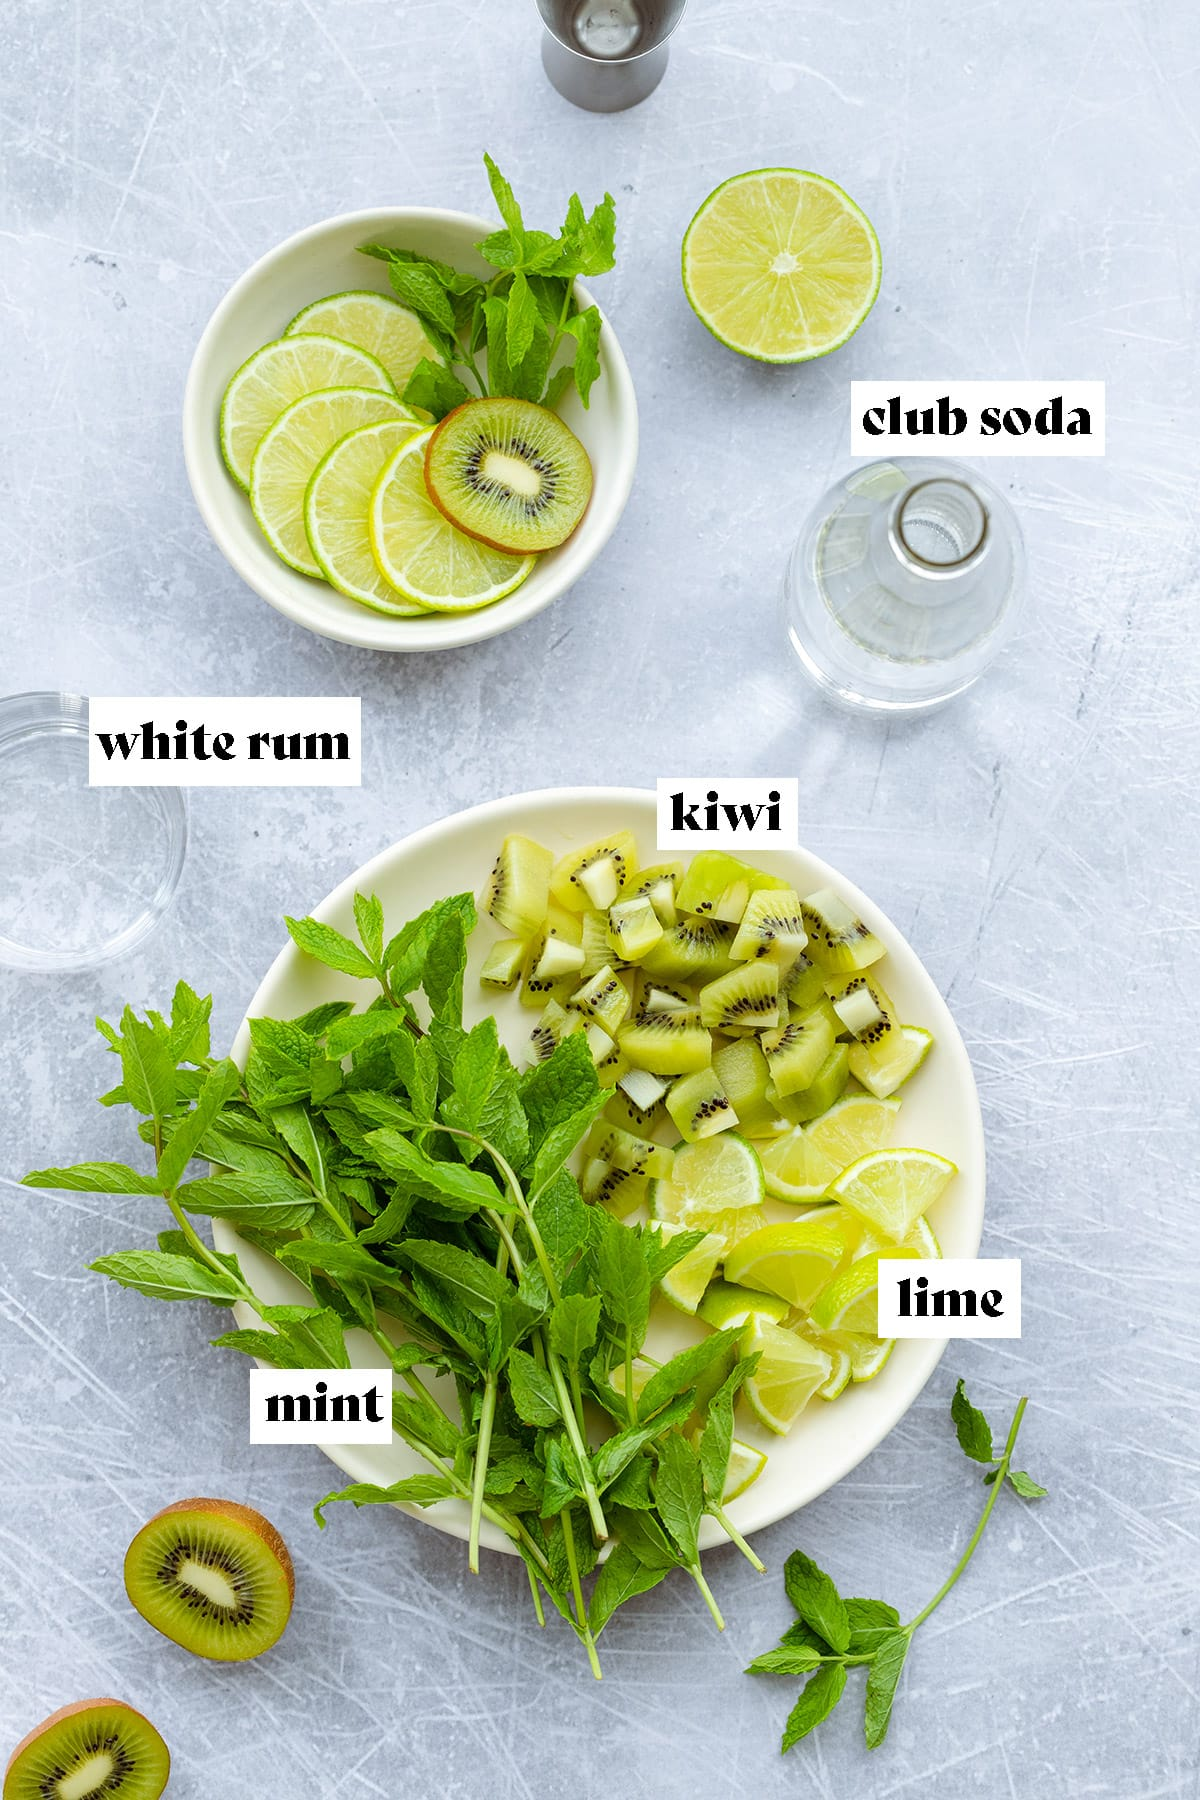 Ingredients for the cocktail laid out on a scratched metal background. There is chopped kiwi, lime, fresh mint, club soda, and white rum.